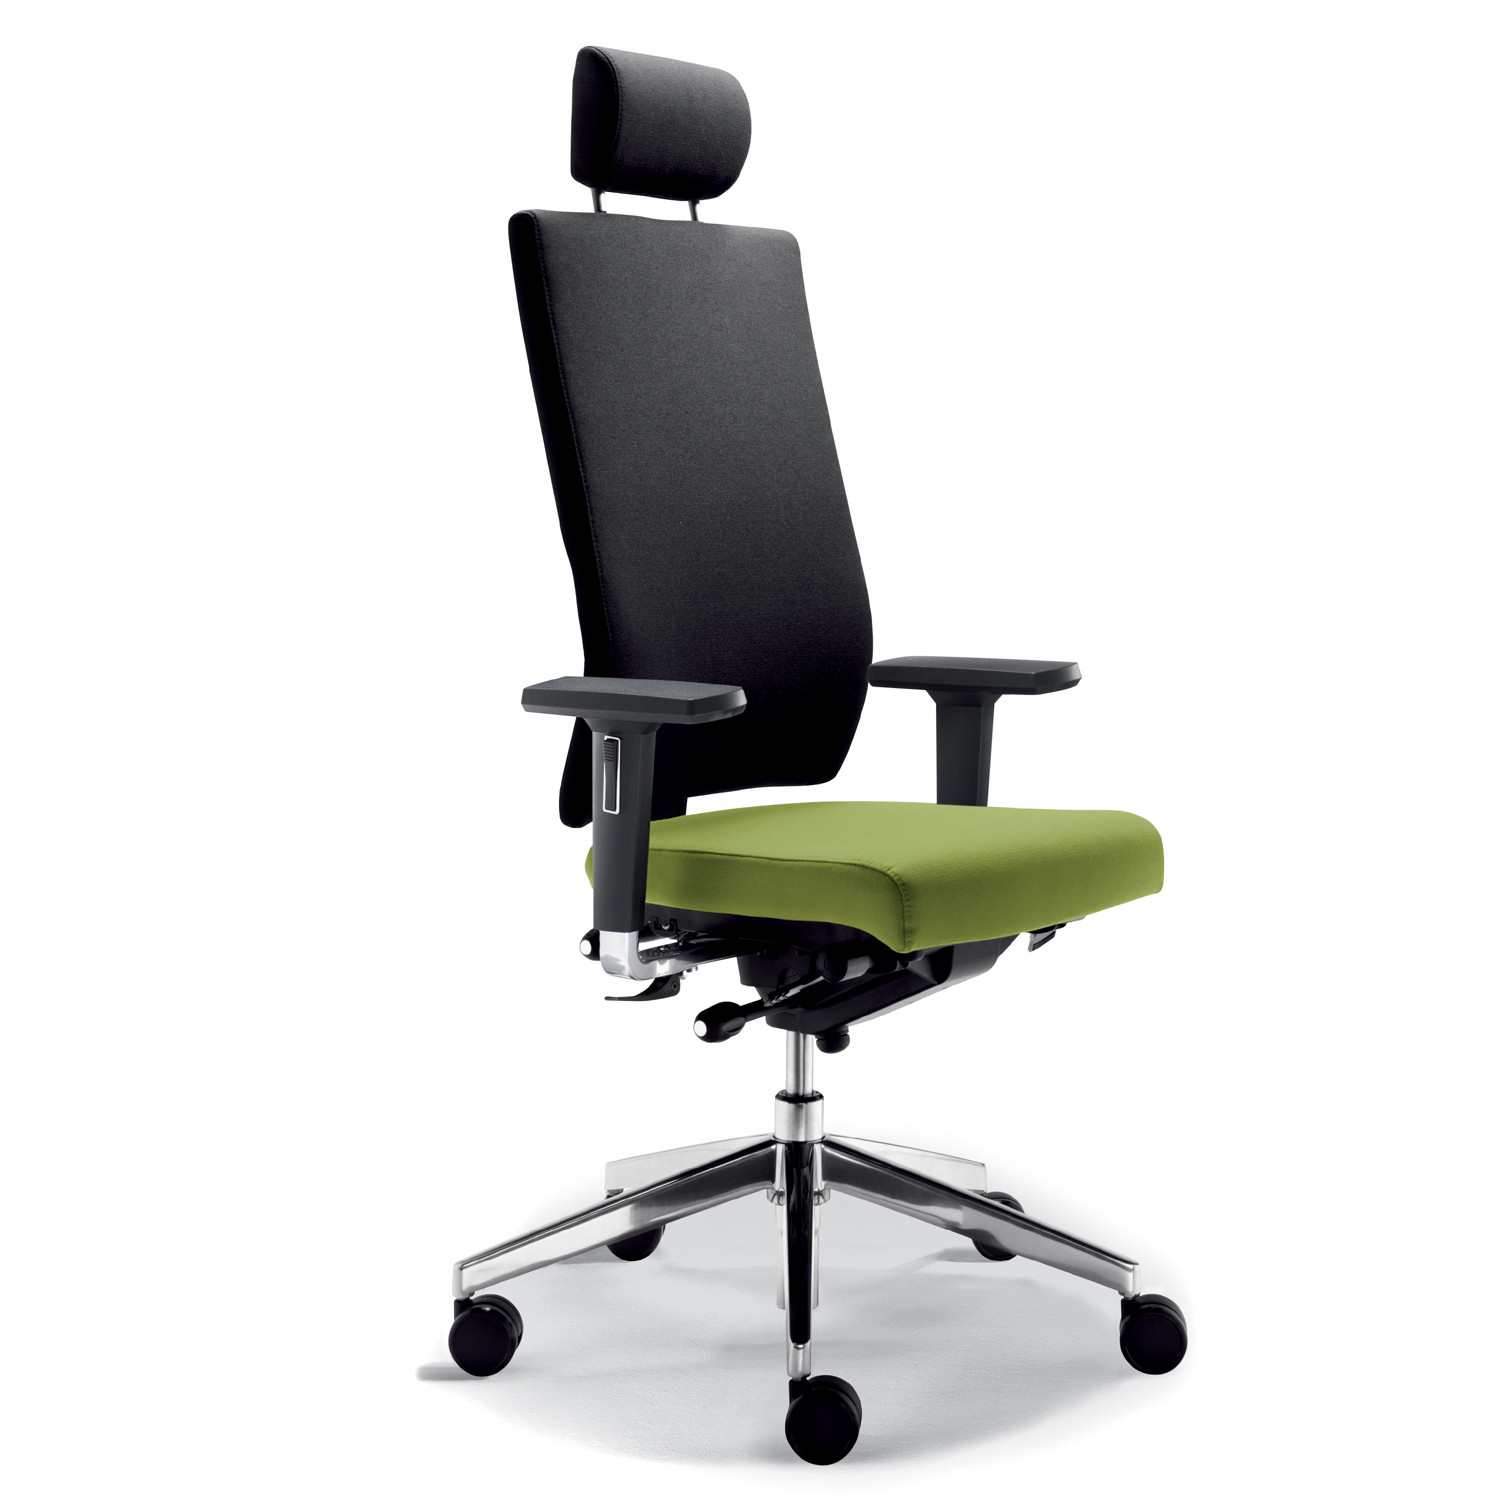 TakeOver Office Desk Chair by Dauphin